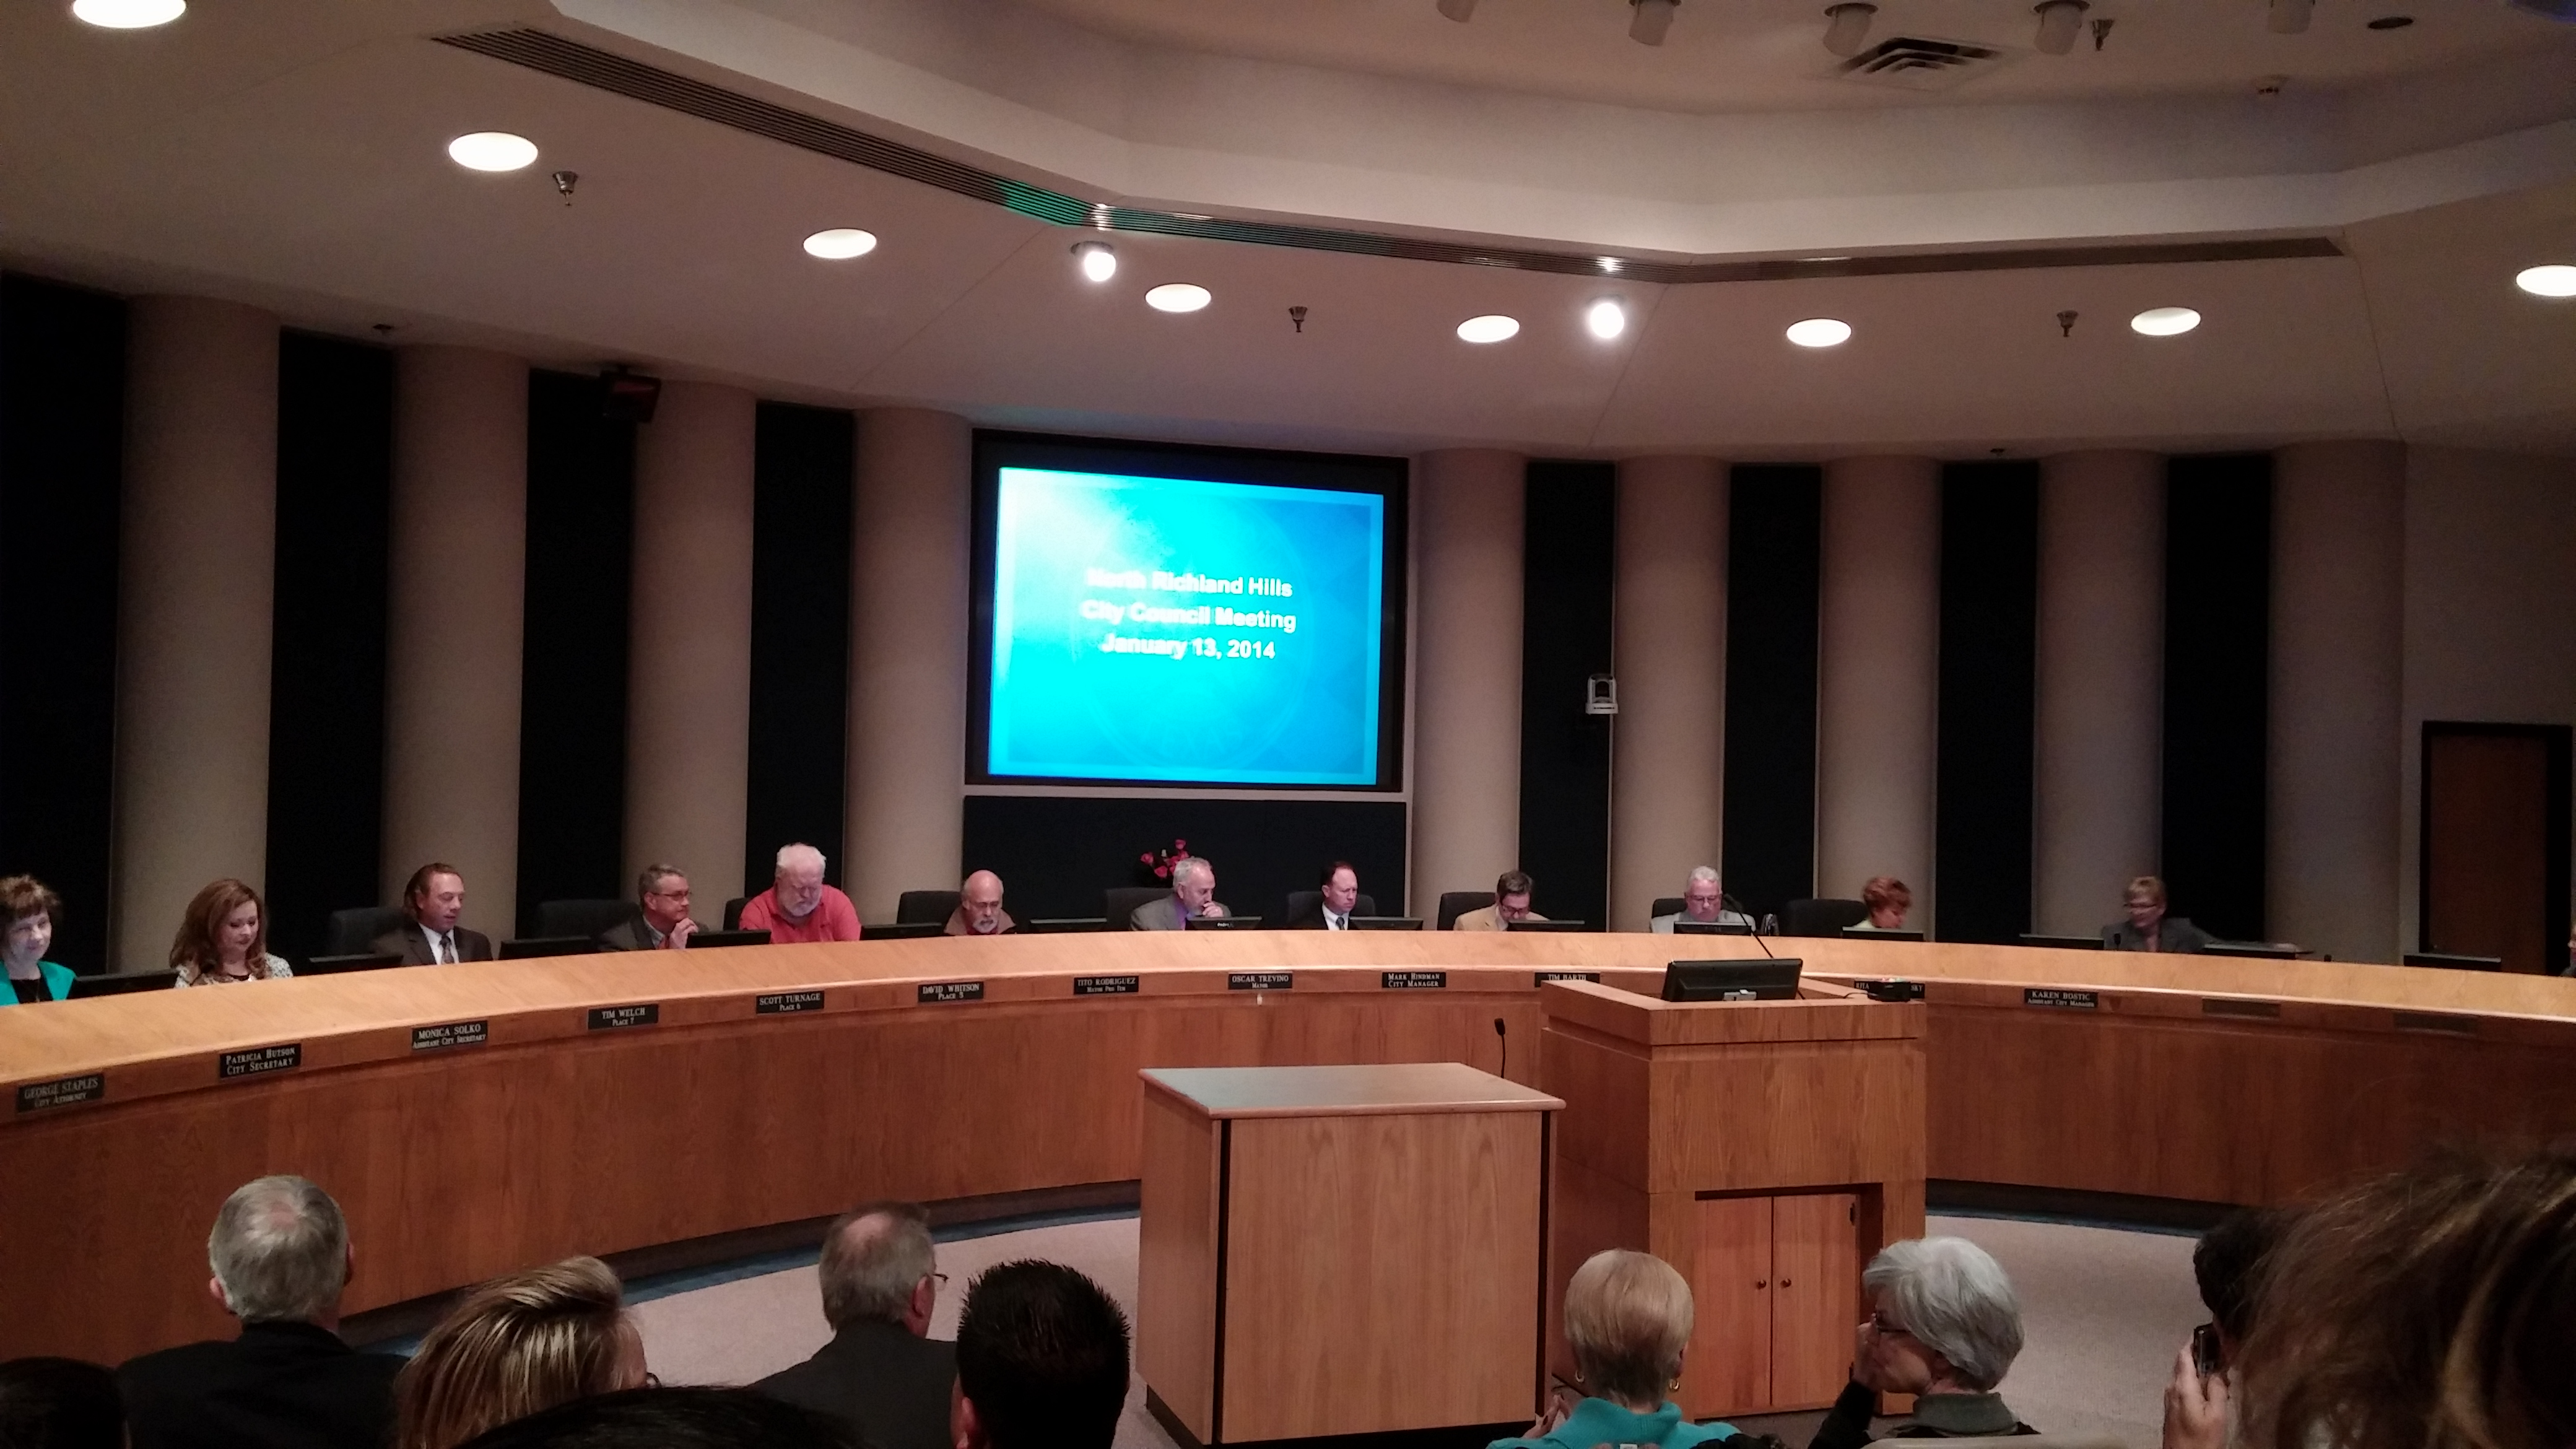 North Richland Hills City Council meeting